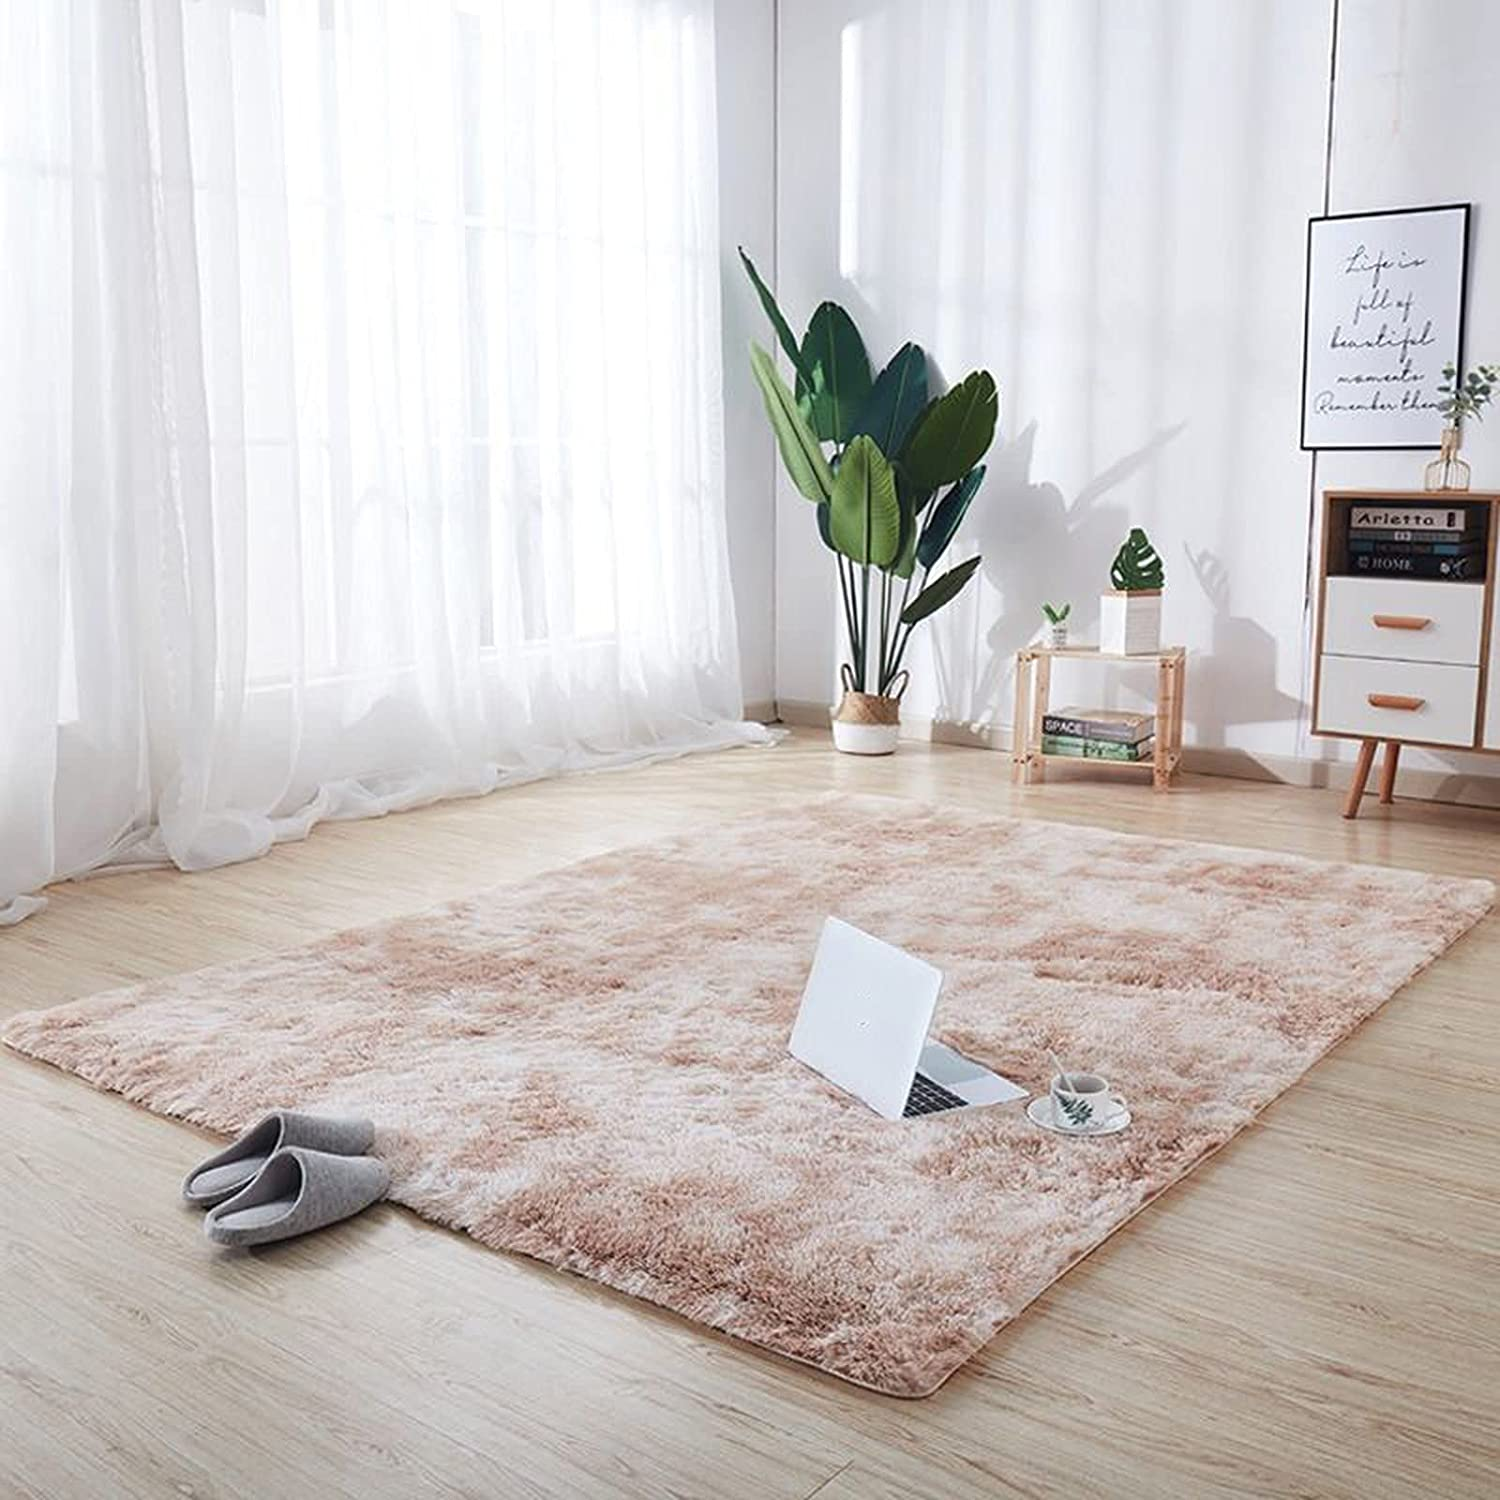 JHJUH Area Rug Fluffy Living Room Reservation Year-end annual account Luxury R Large